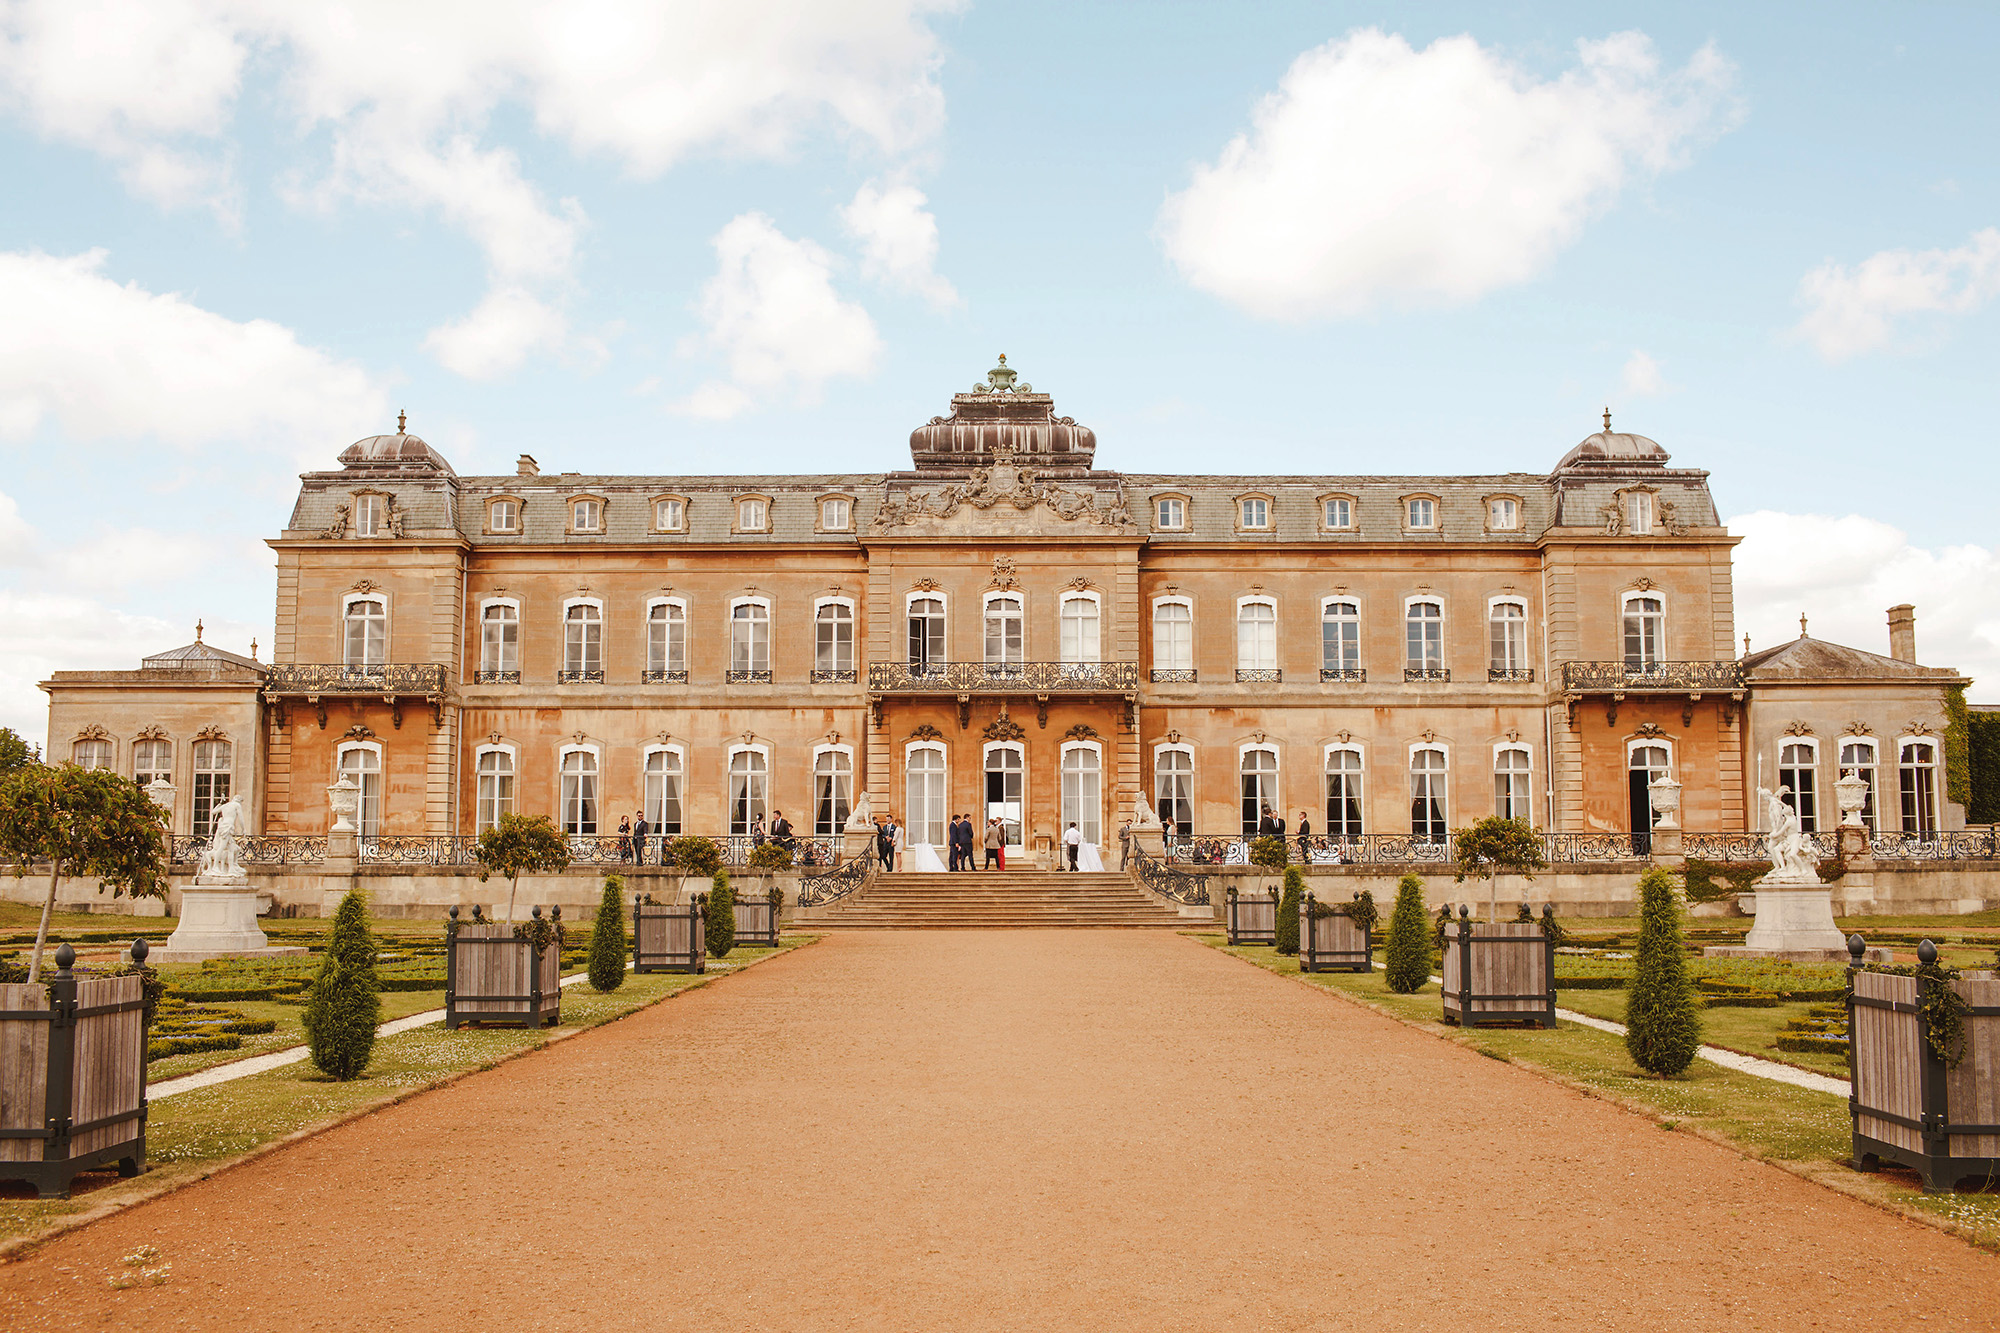 Wrest Park front entrance - Bedforshire England - photo by Motiejus